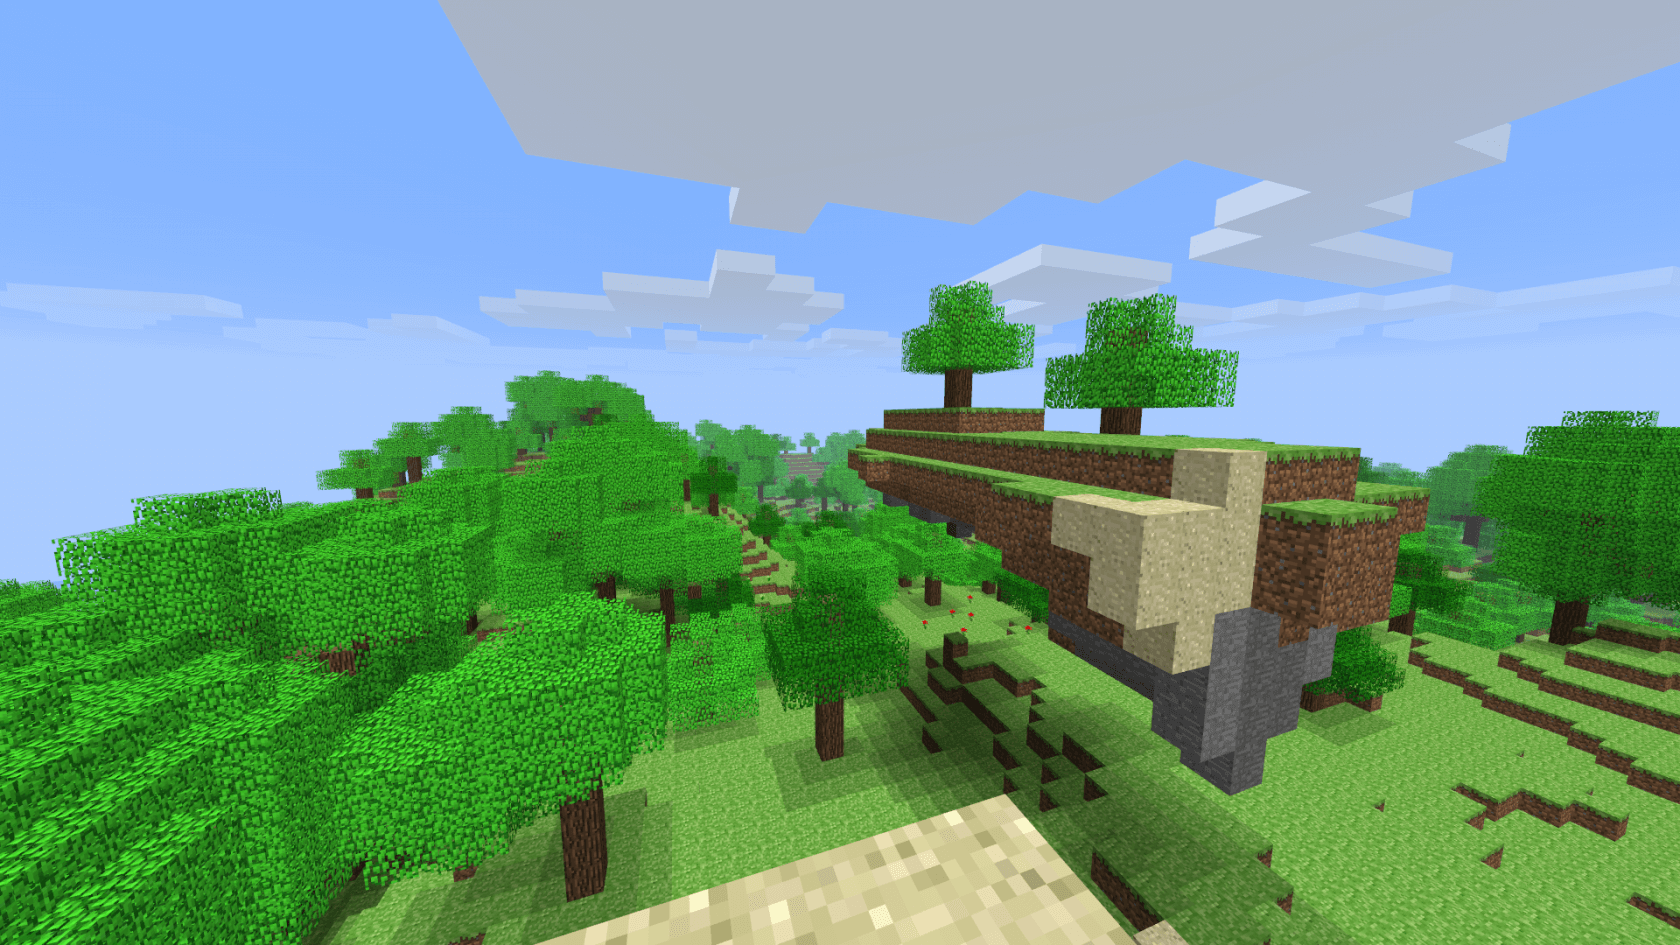 Mojang launches 'Minecraft Classic' for web browsers - TechSpot